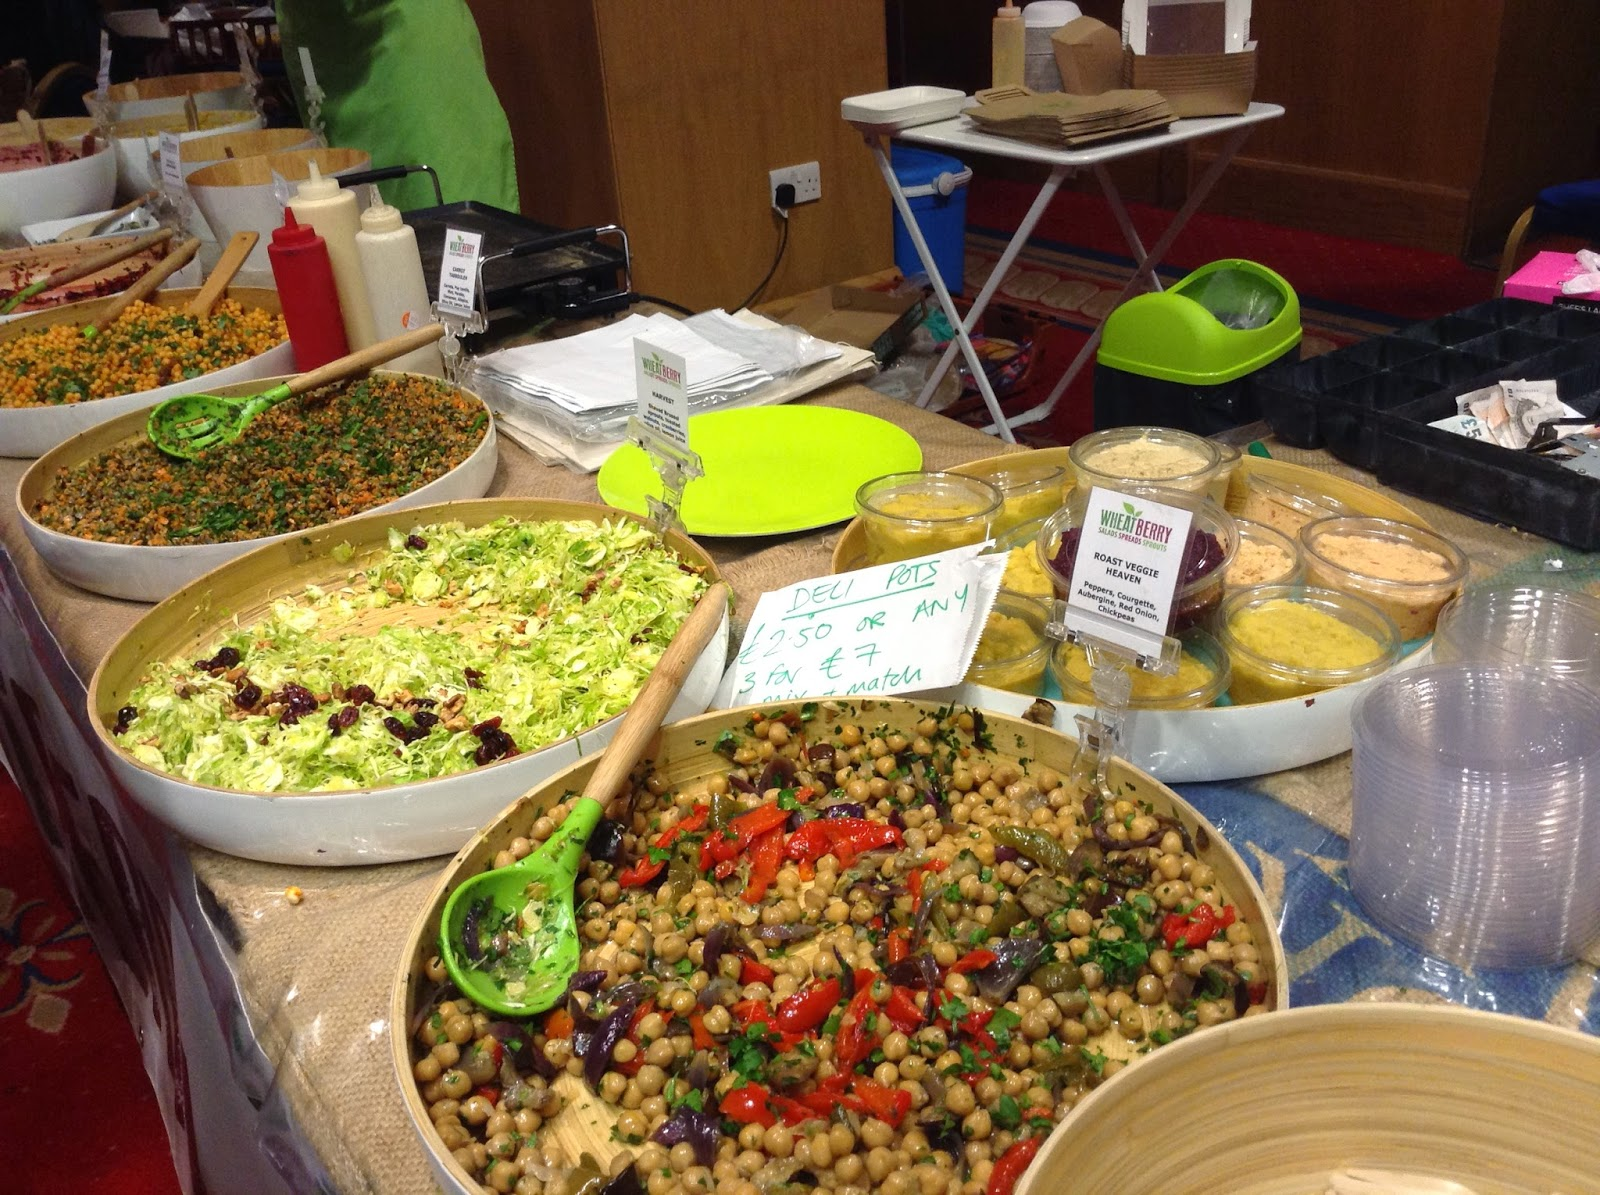 Wheatberry at the North East Vegan Festival 2014